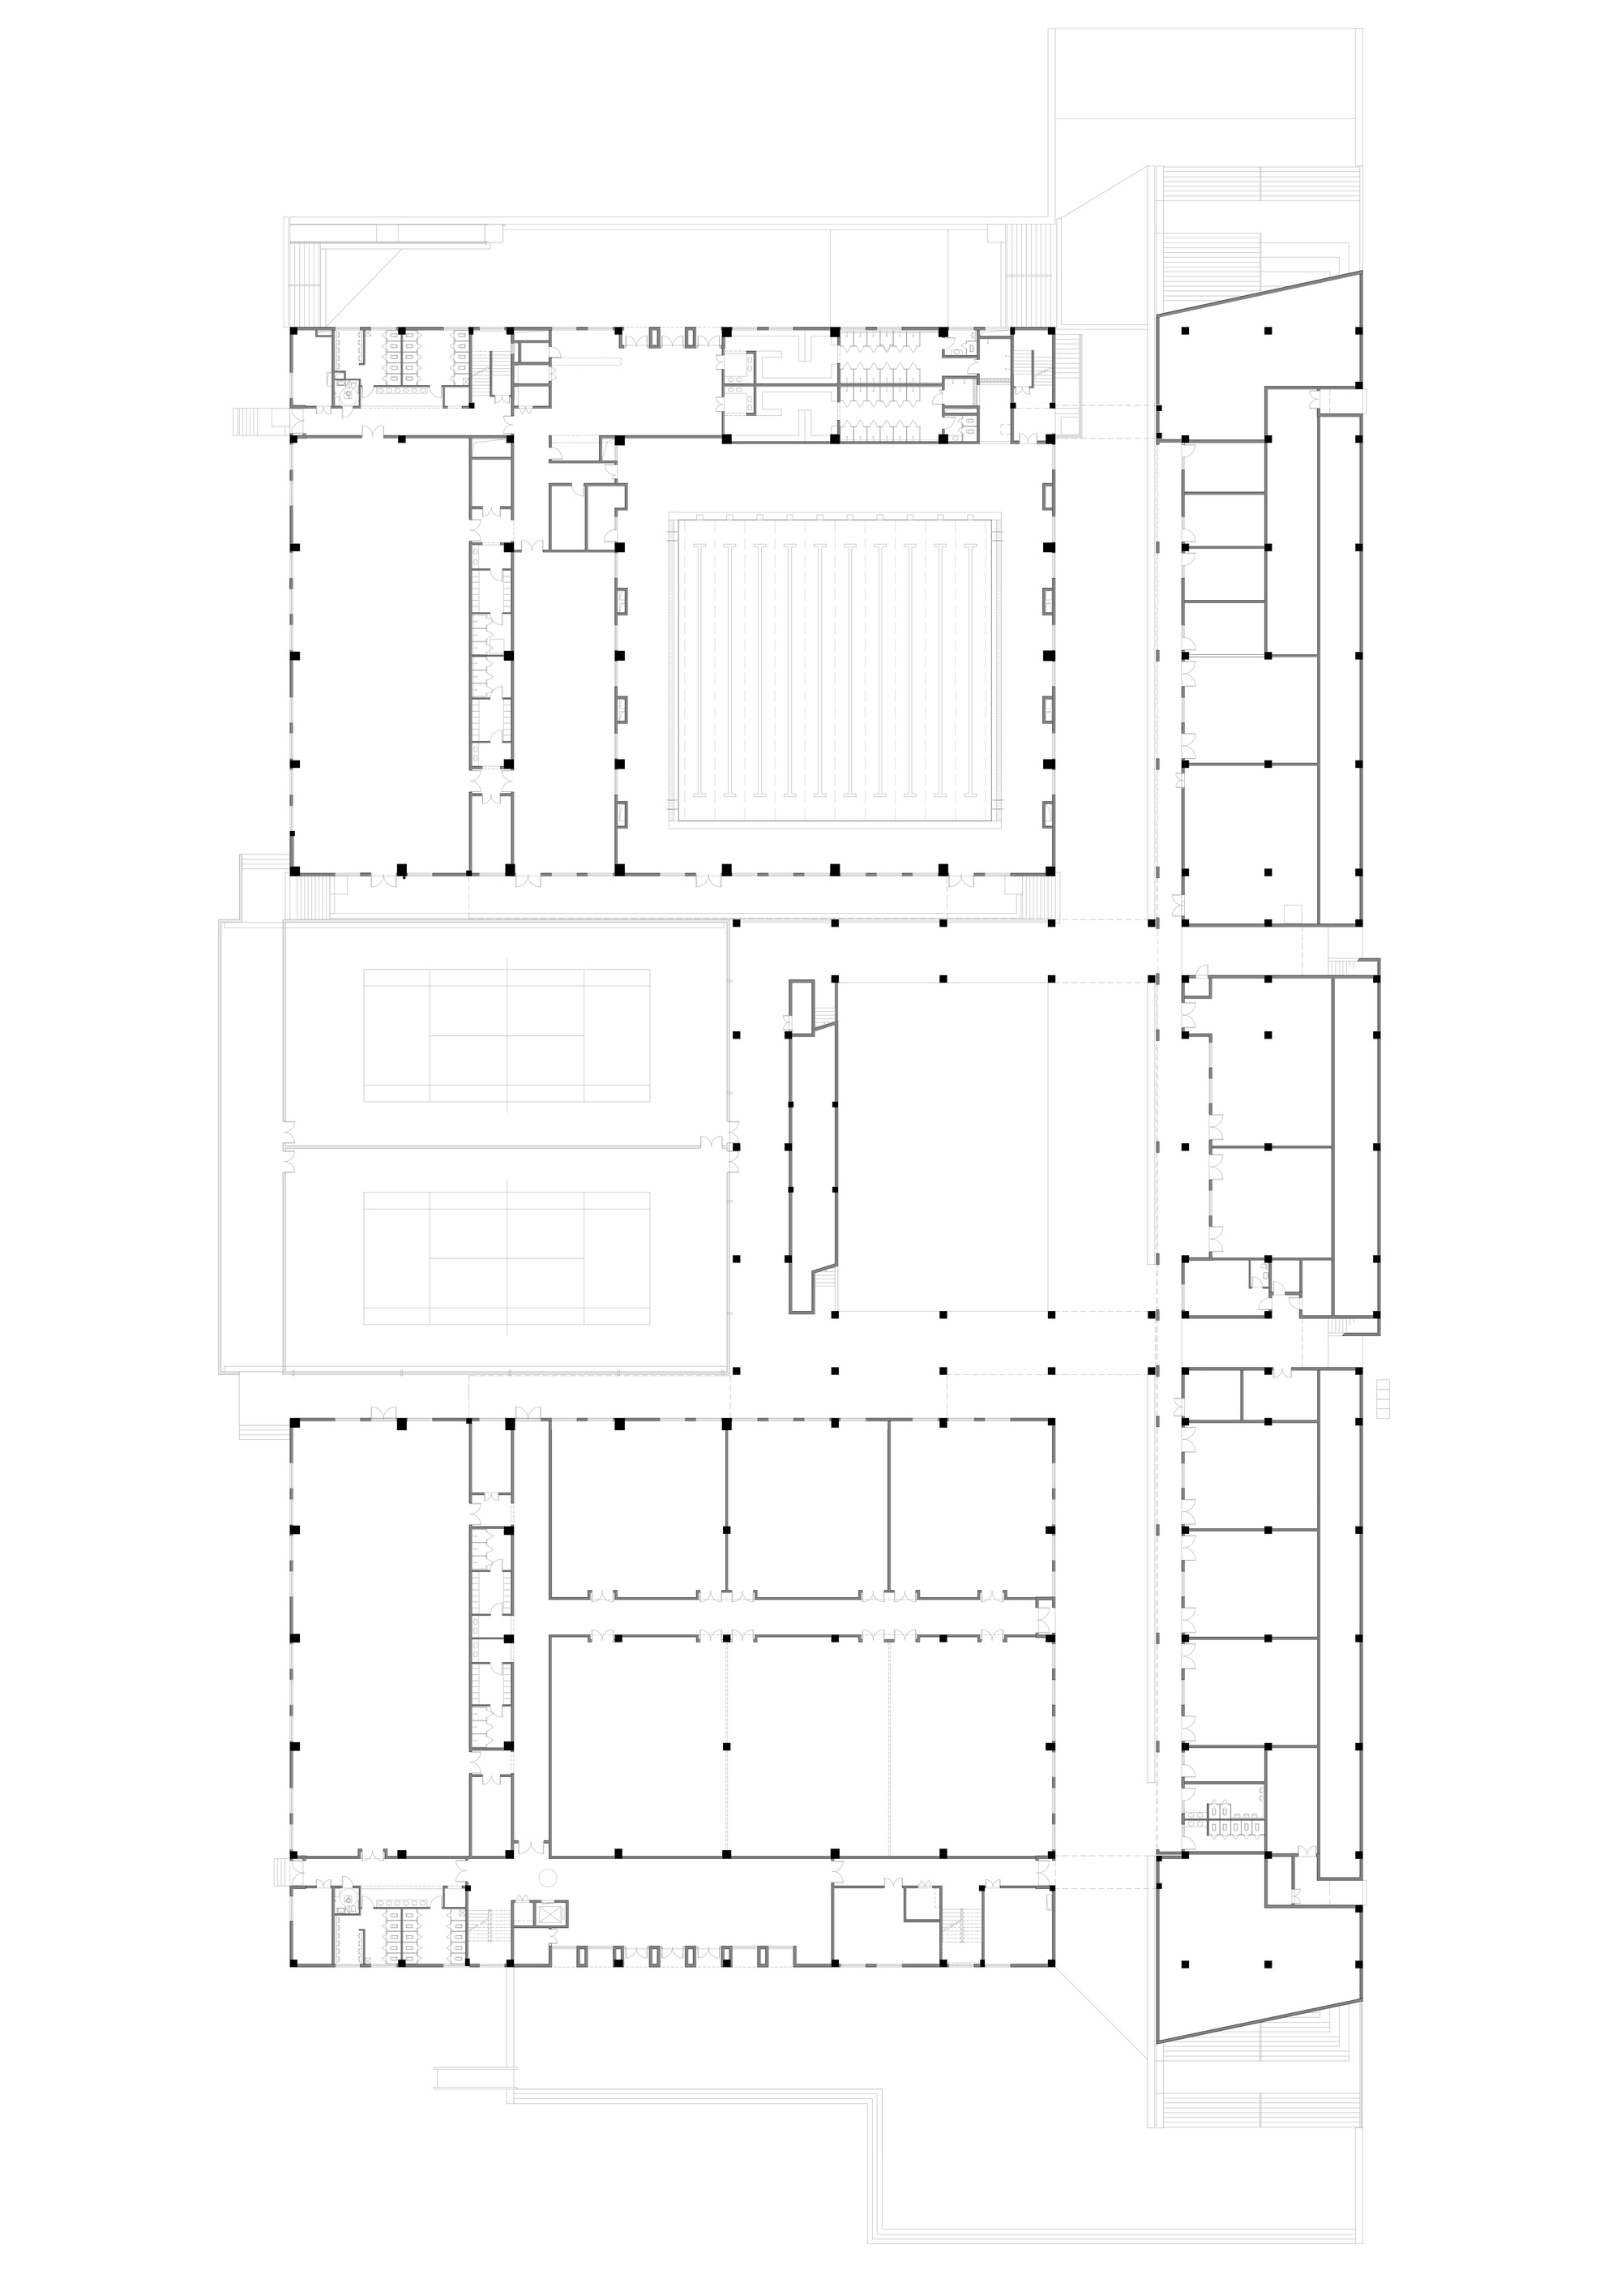 17_Drawing002_Plan_of_the_first_floor_of_the_comprehensive_gymnasium.jpg